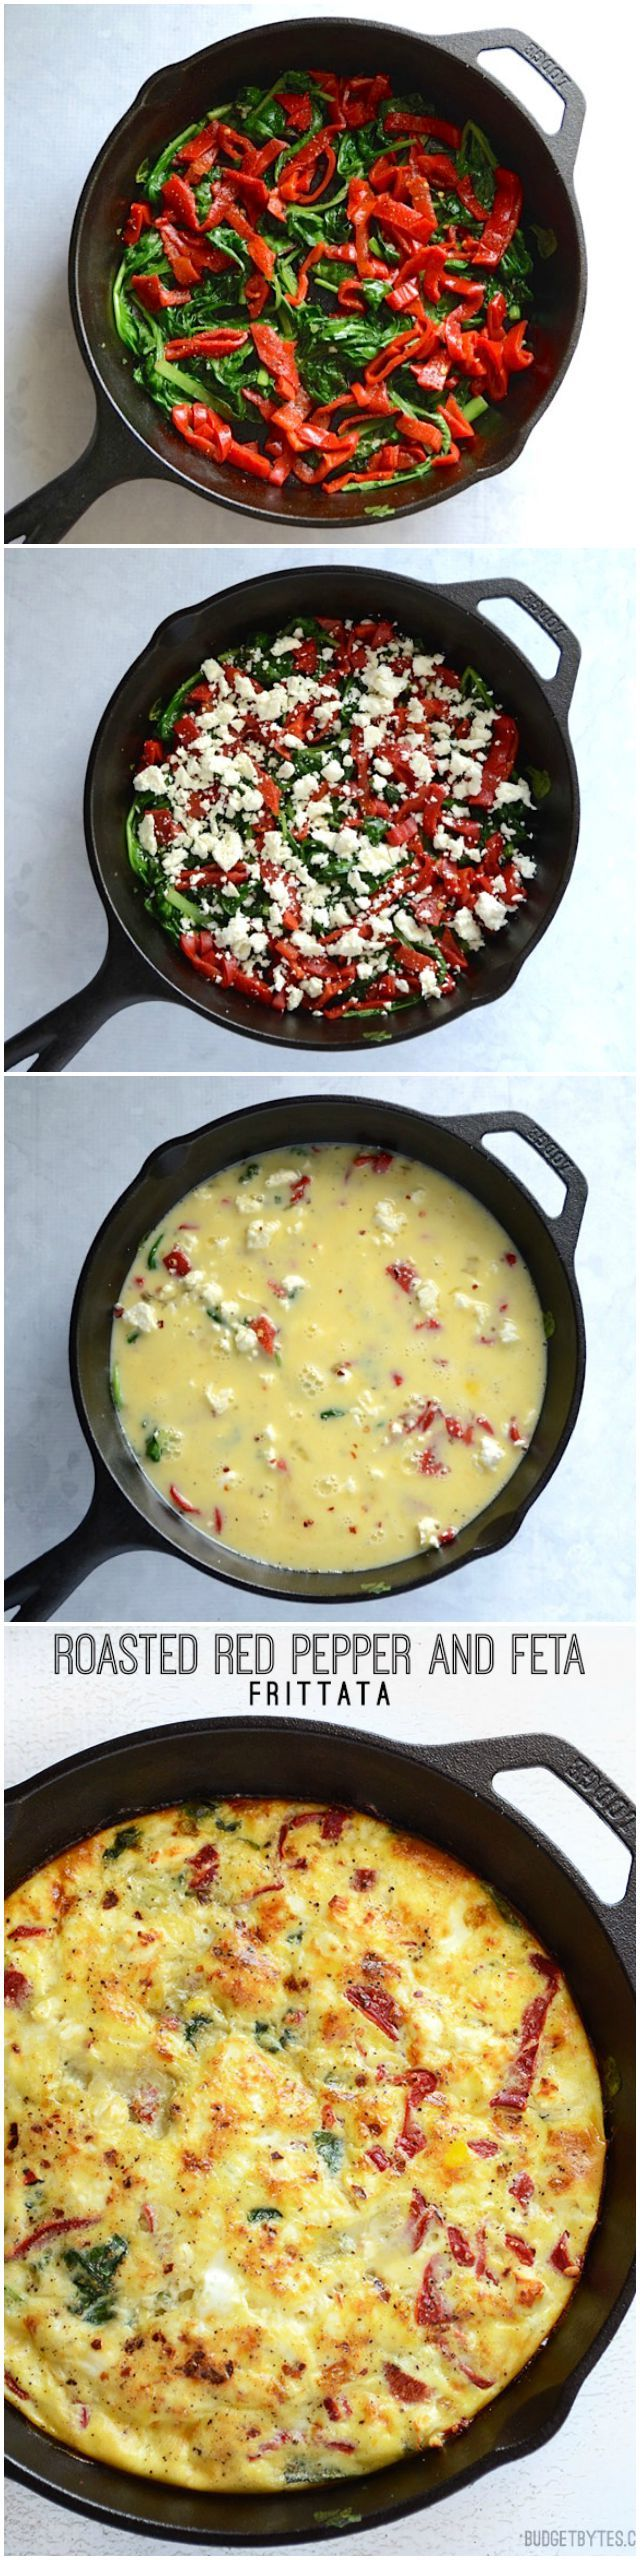 Roasted Red Pepper and Feta Frittata - BudgetBytes.com. I used onions and roasted red pepper. Everyone liked it. -cb